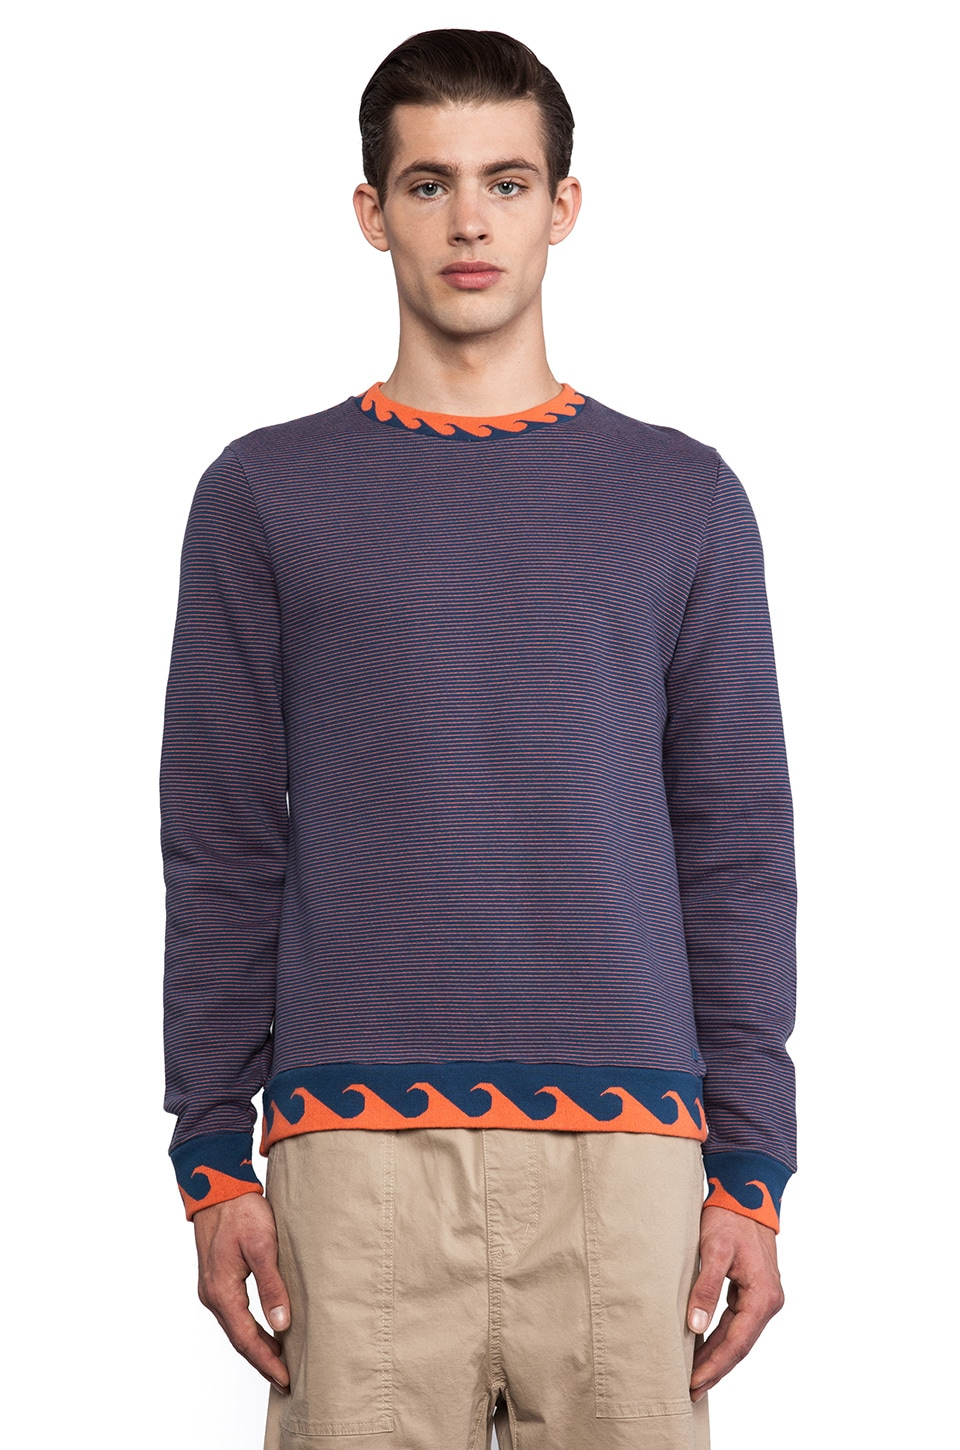 Marc by Marc Jacobs Venice Sweatshirt in Periwinkle Blue Multi